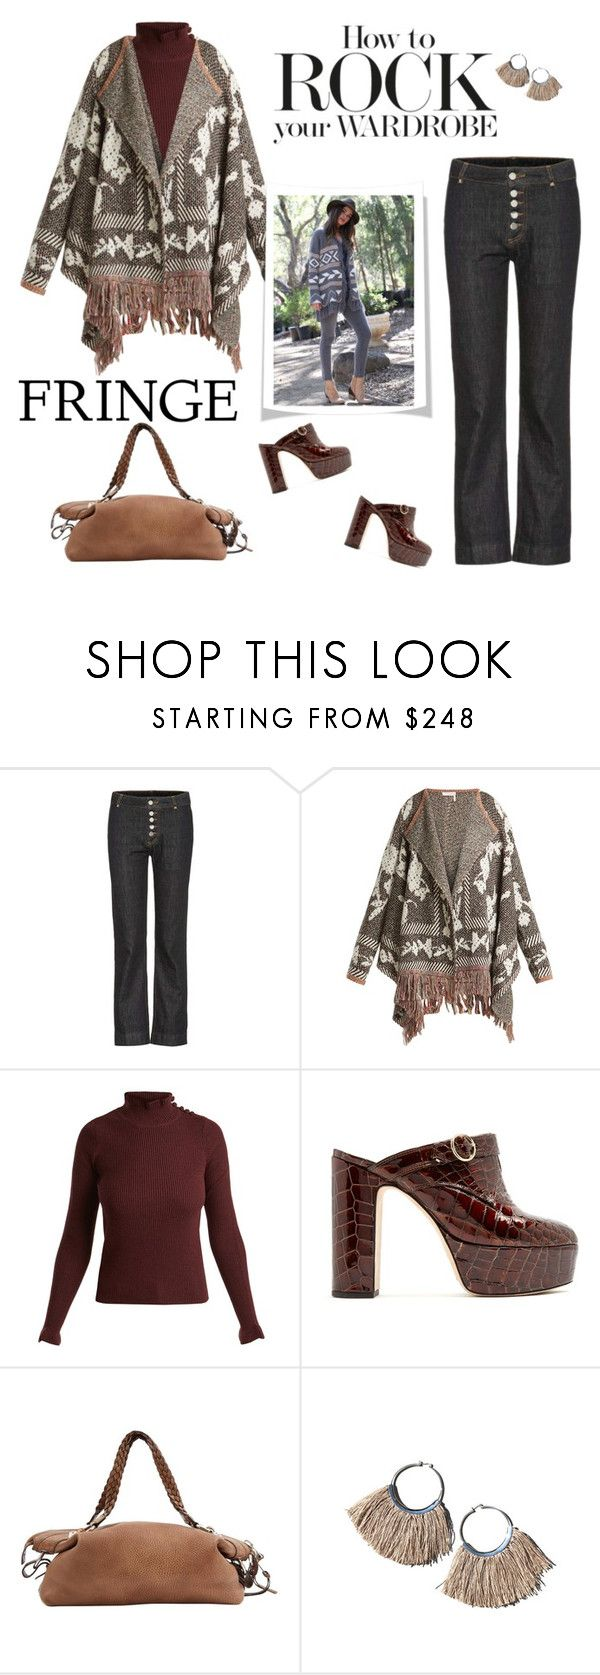 """""""Shimmy Shimmy: Fringe"""" by likepolyfashion ❤ liked on Polyvore featuring AlexaChung, See by Chloé, Gucci, Erin Considine and fringe"""